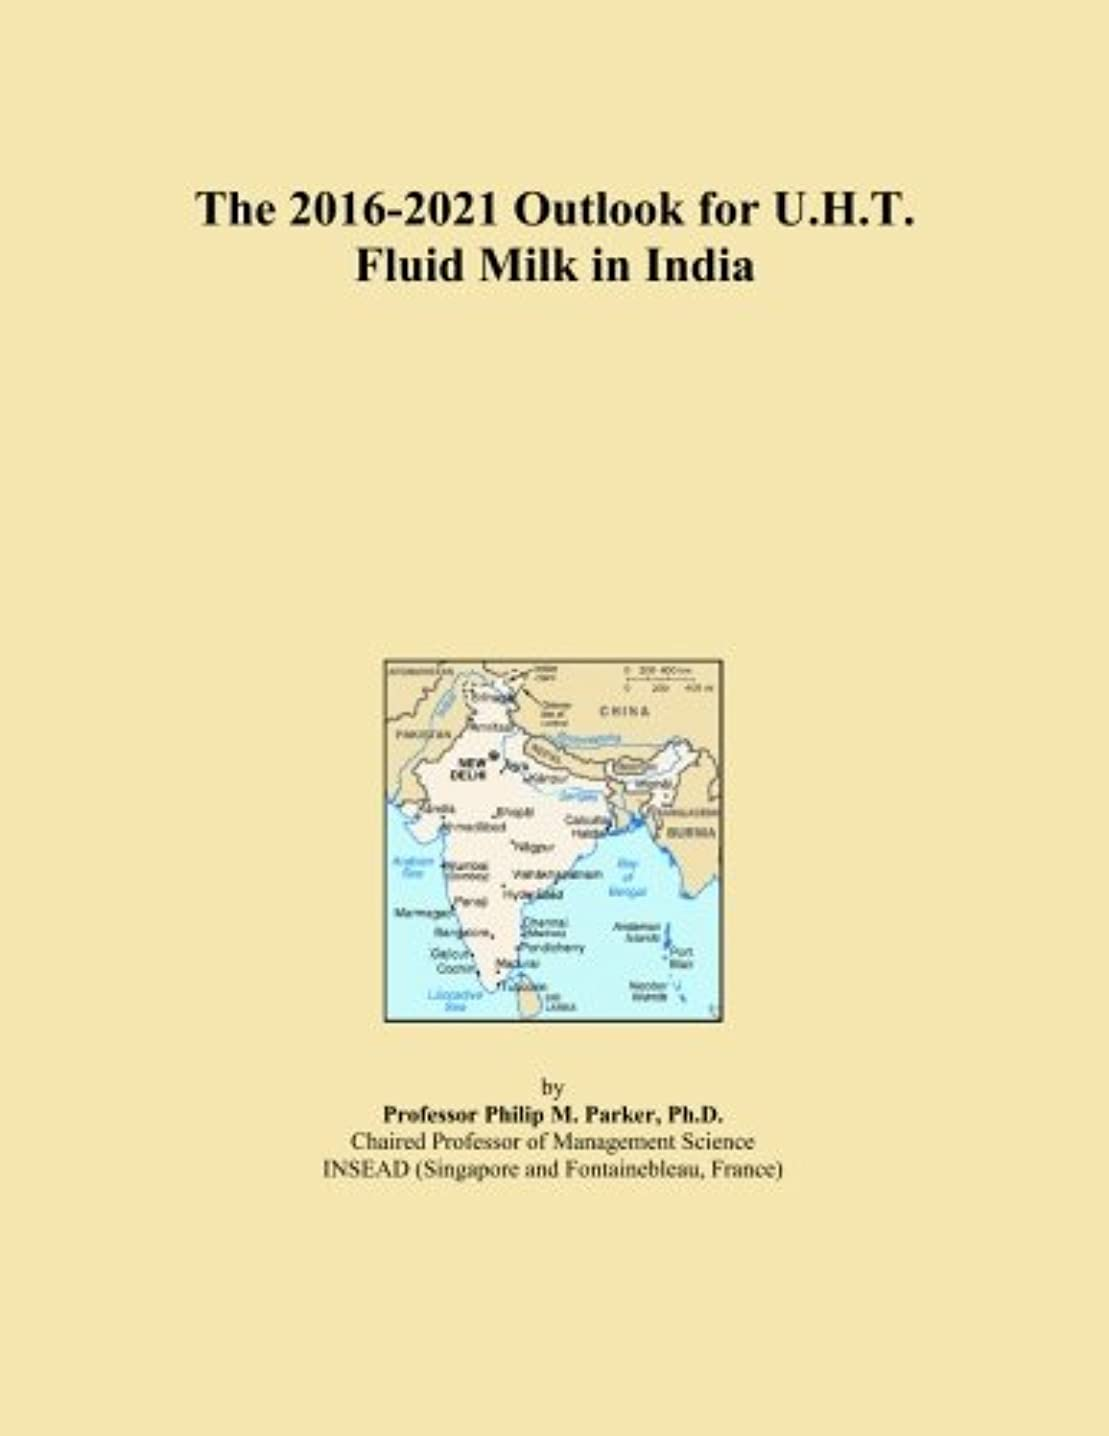 草楽な肌寒いThe 2016-2021 Outlook for U.H.T. Fluid Milk in India